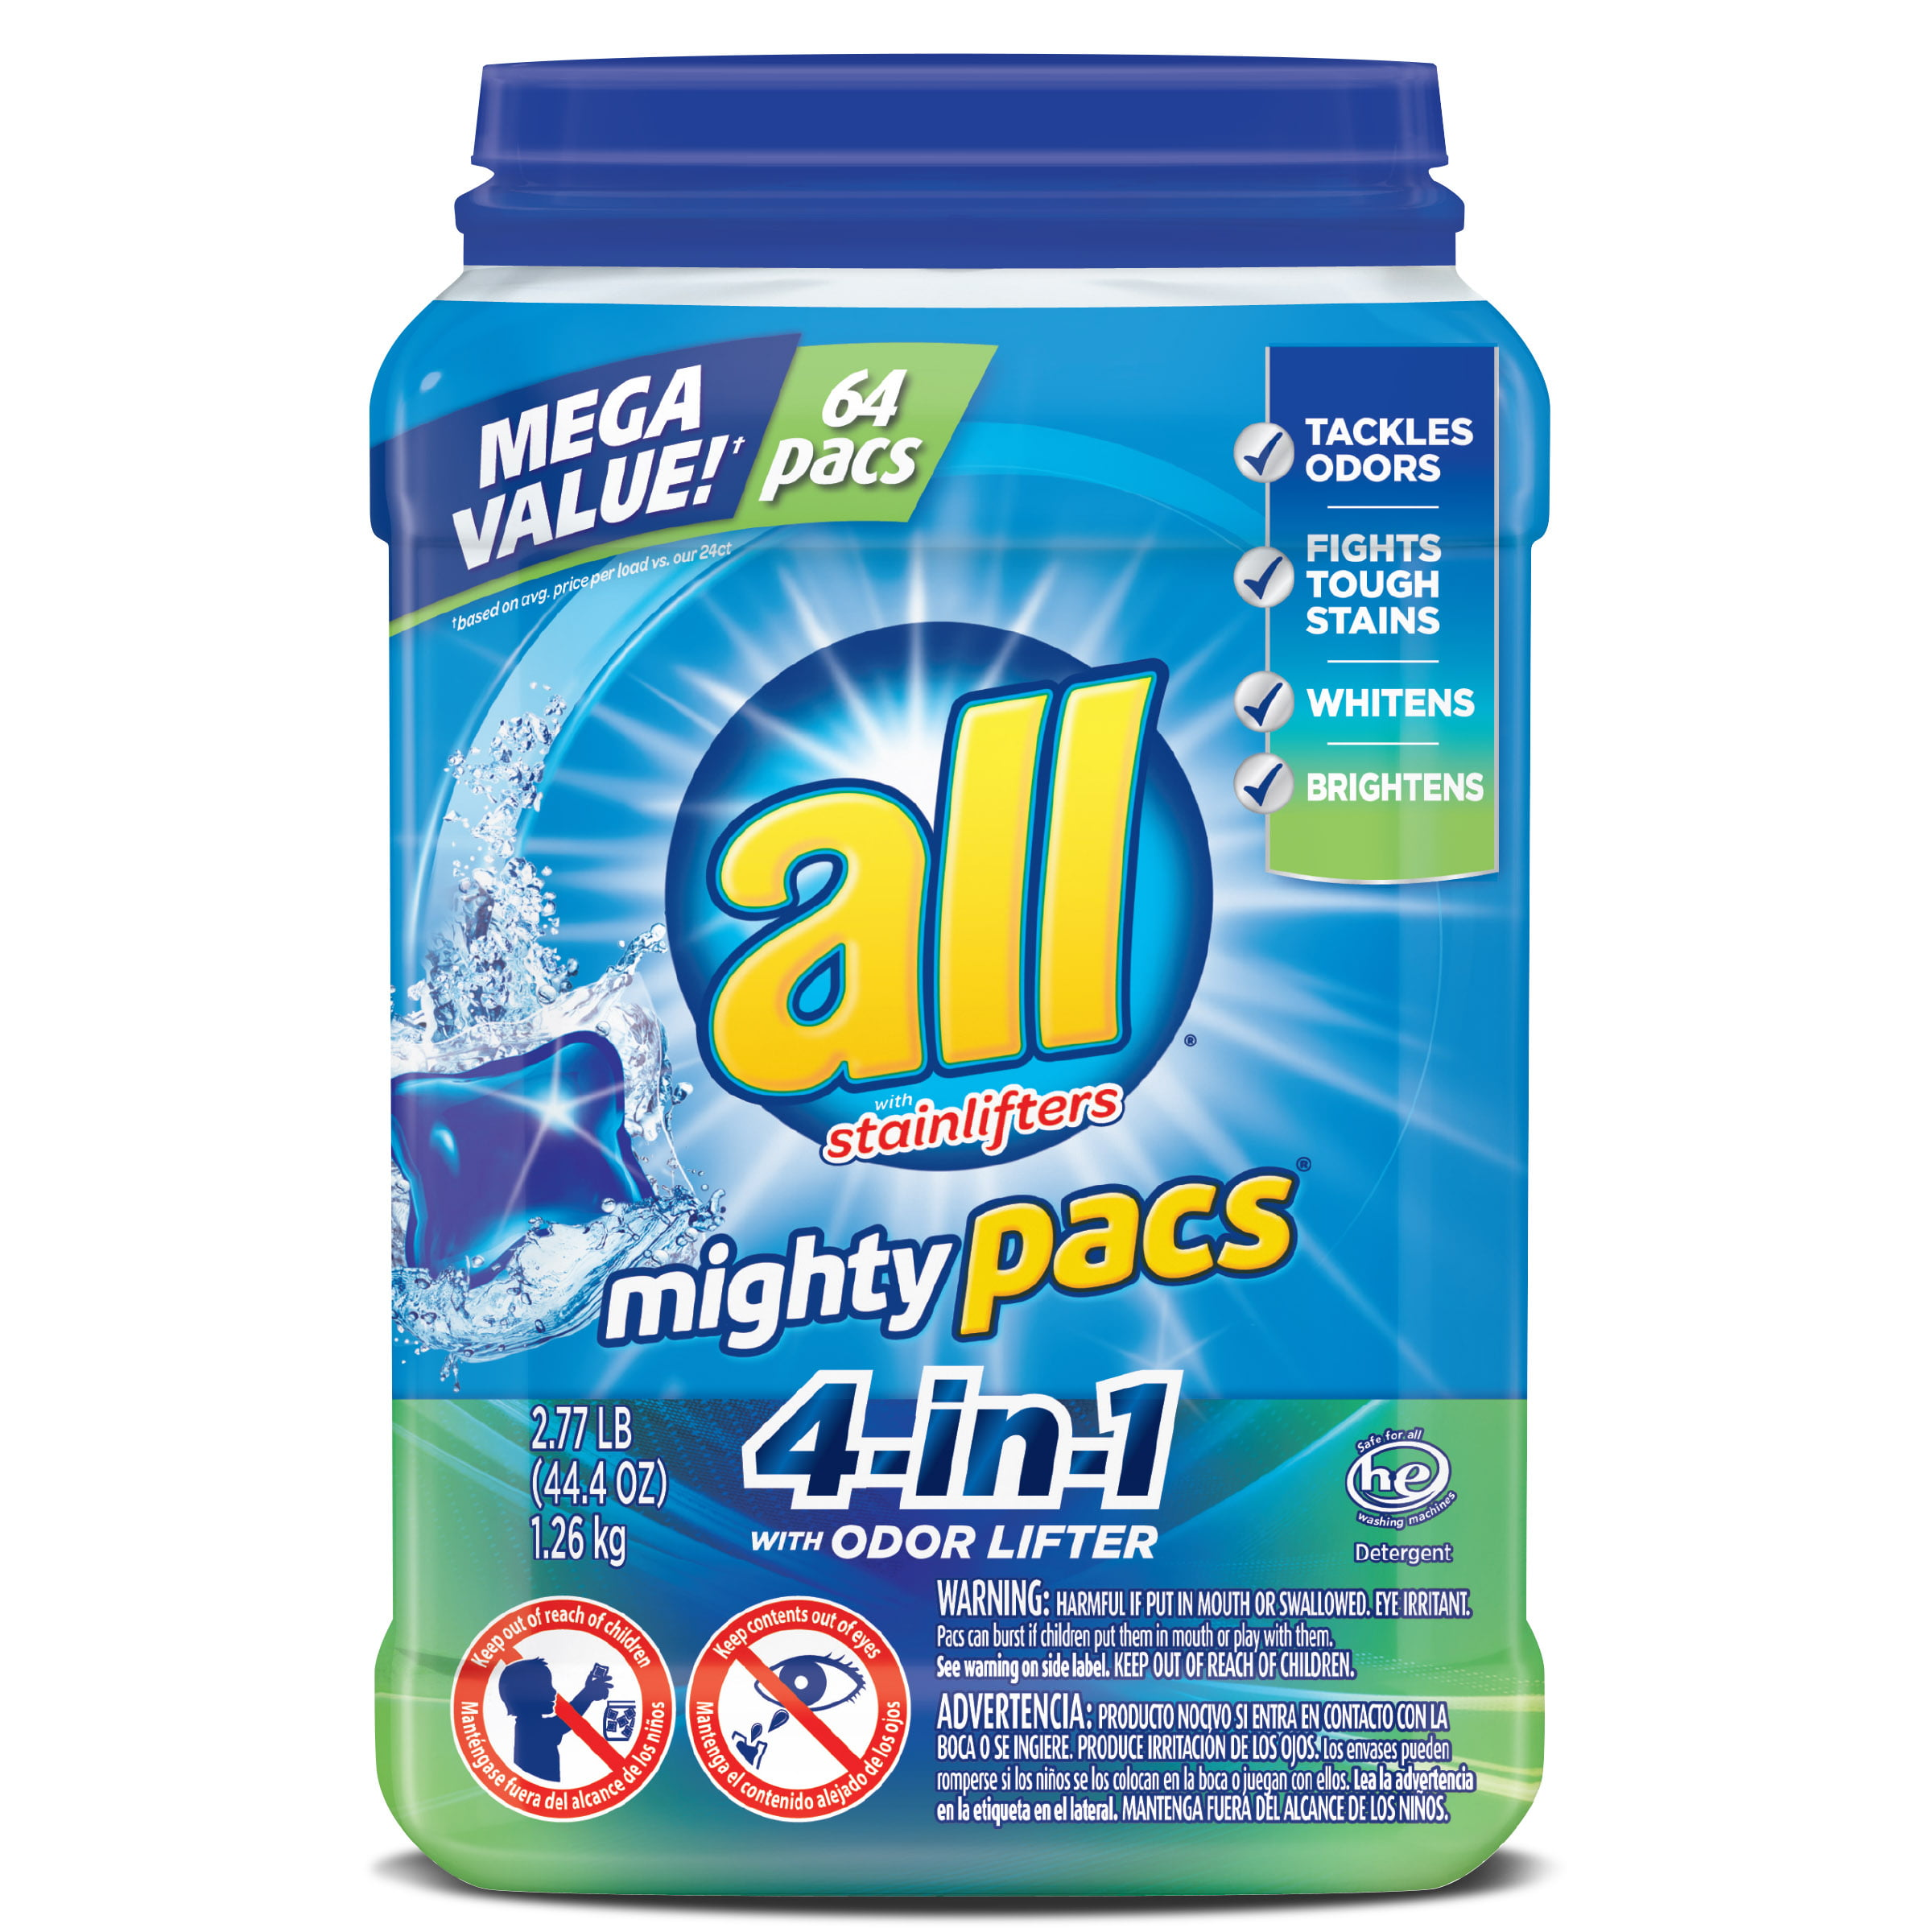 all Mighty Pacs Laundry Detergent, 4-in-1 with Odor Lifter, 64 Count